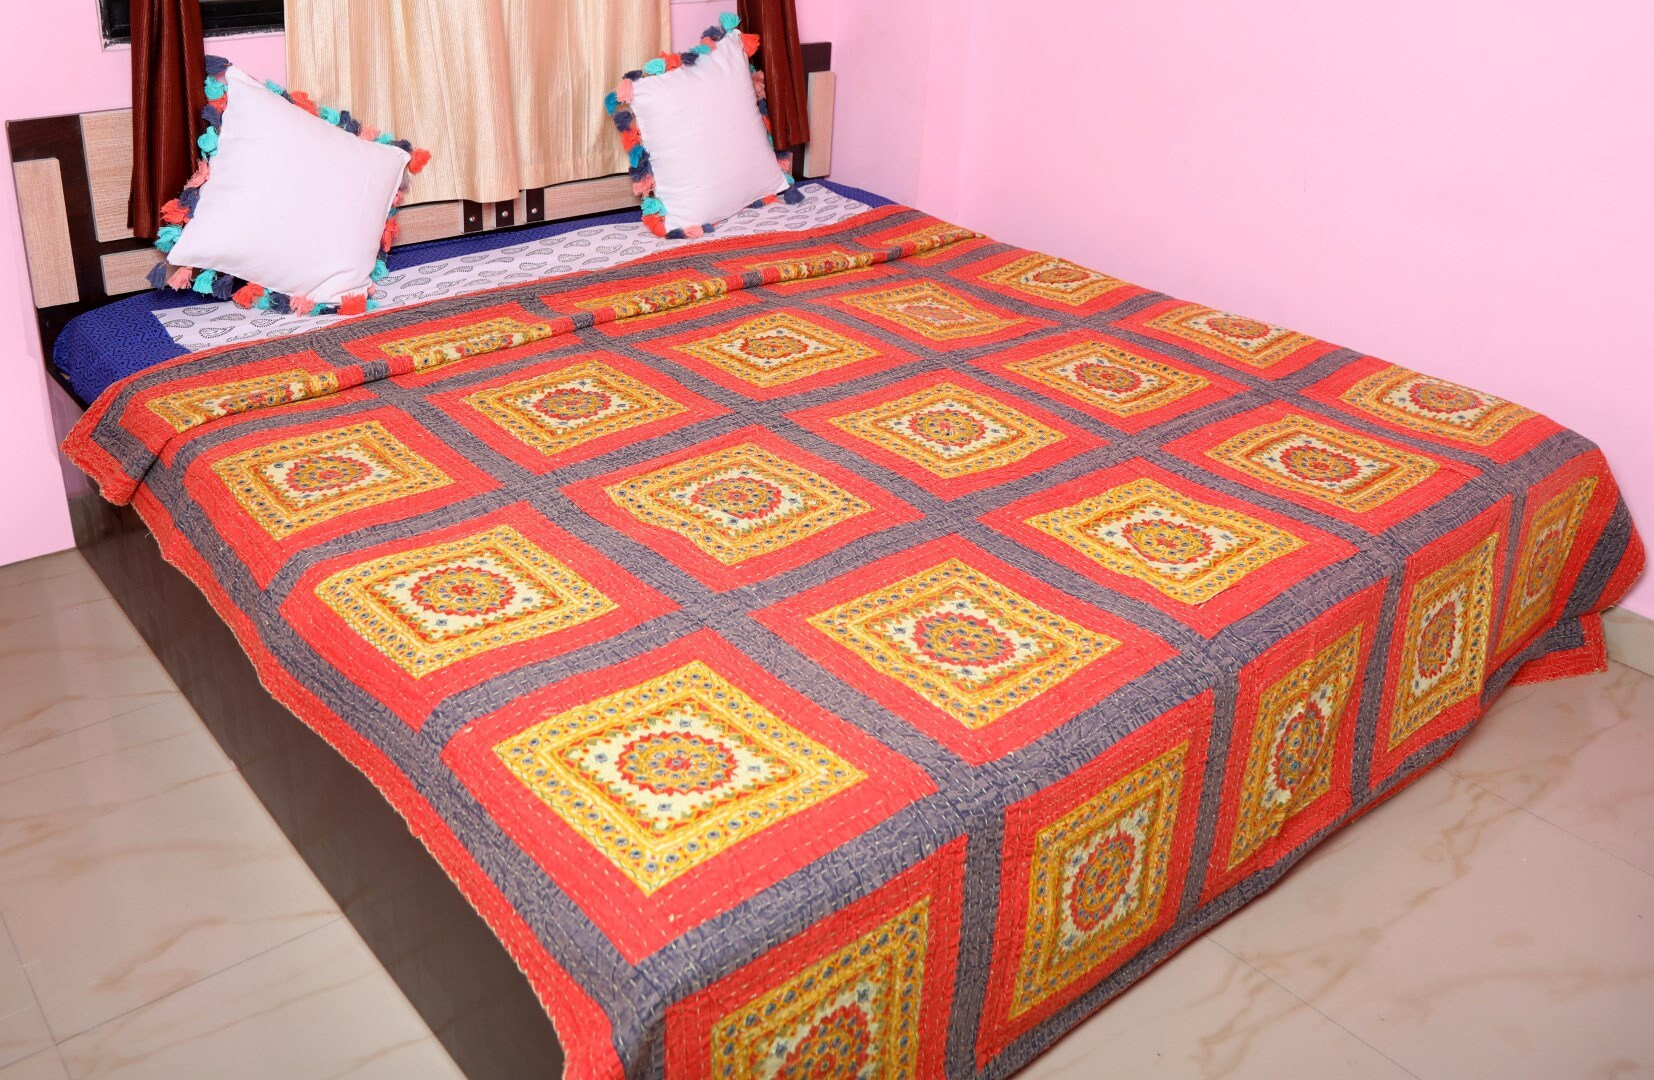 Ethnic Indian Mirror Kantha Main Brodé Bedspread Traditionnel Miroir Travail Tapisserie Cotton Quilt Coverlet Decorative Wall Hanging Throw